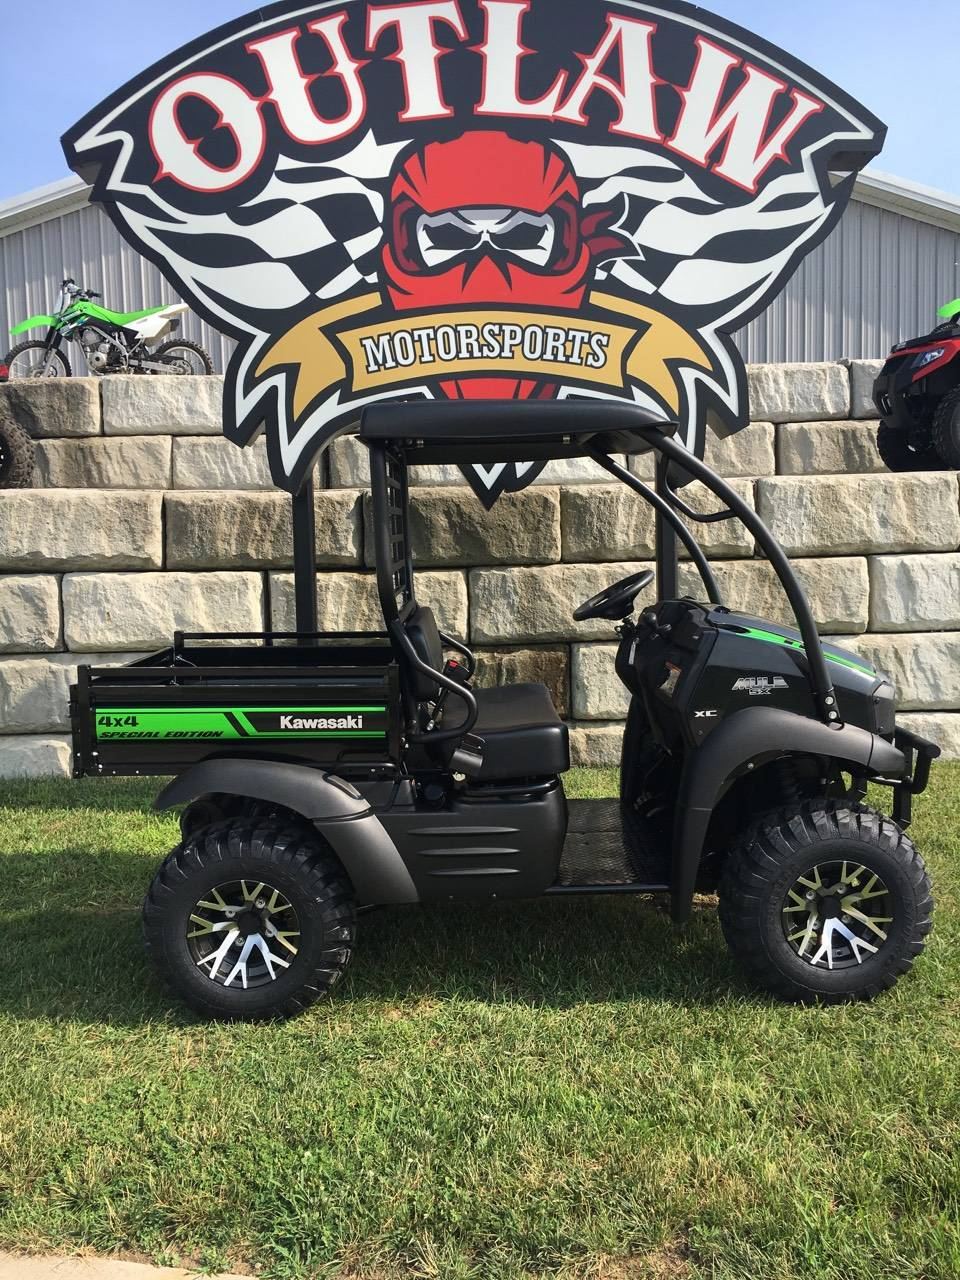 2018 Kawasaki kaf400mjf in Harrisburg, Illinois